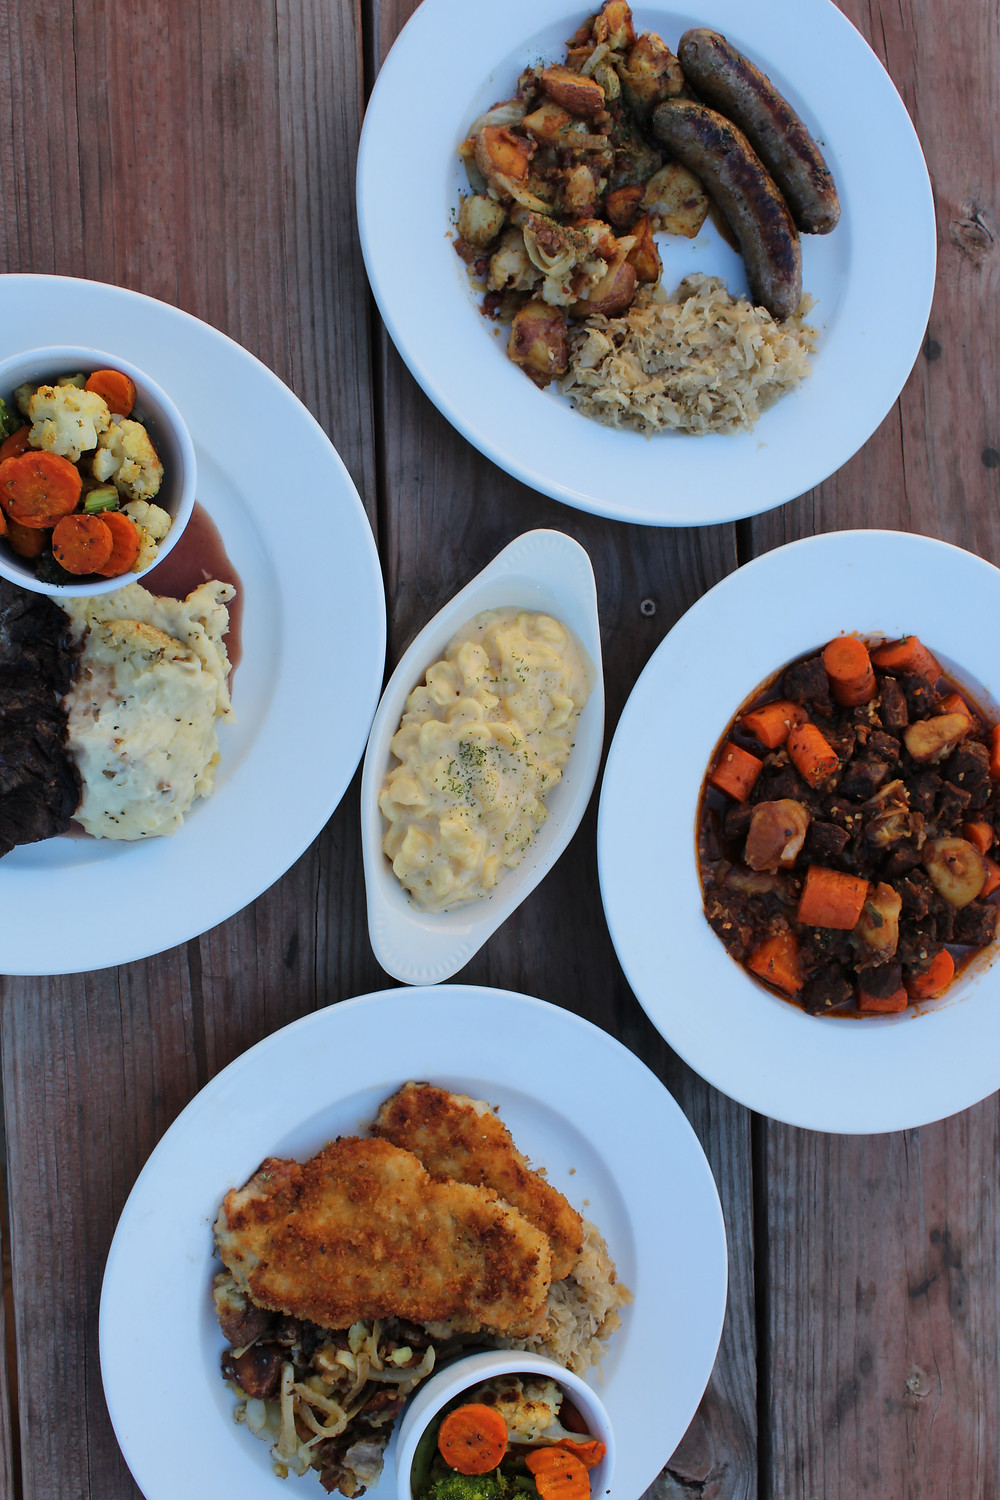 An image of 5 plates of food offered on the Powercat Oktoberfest Menu